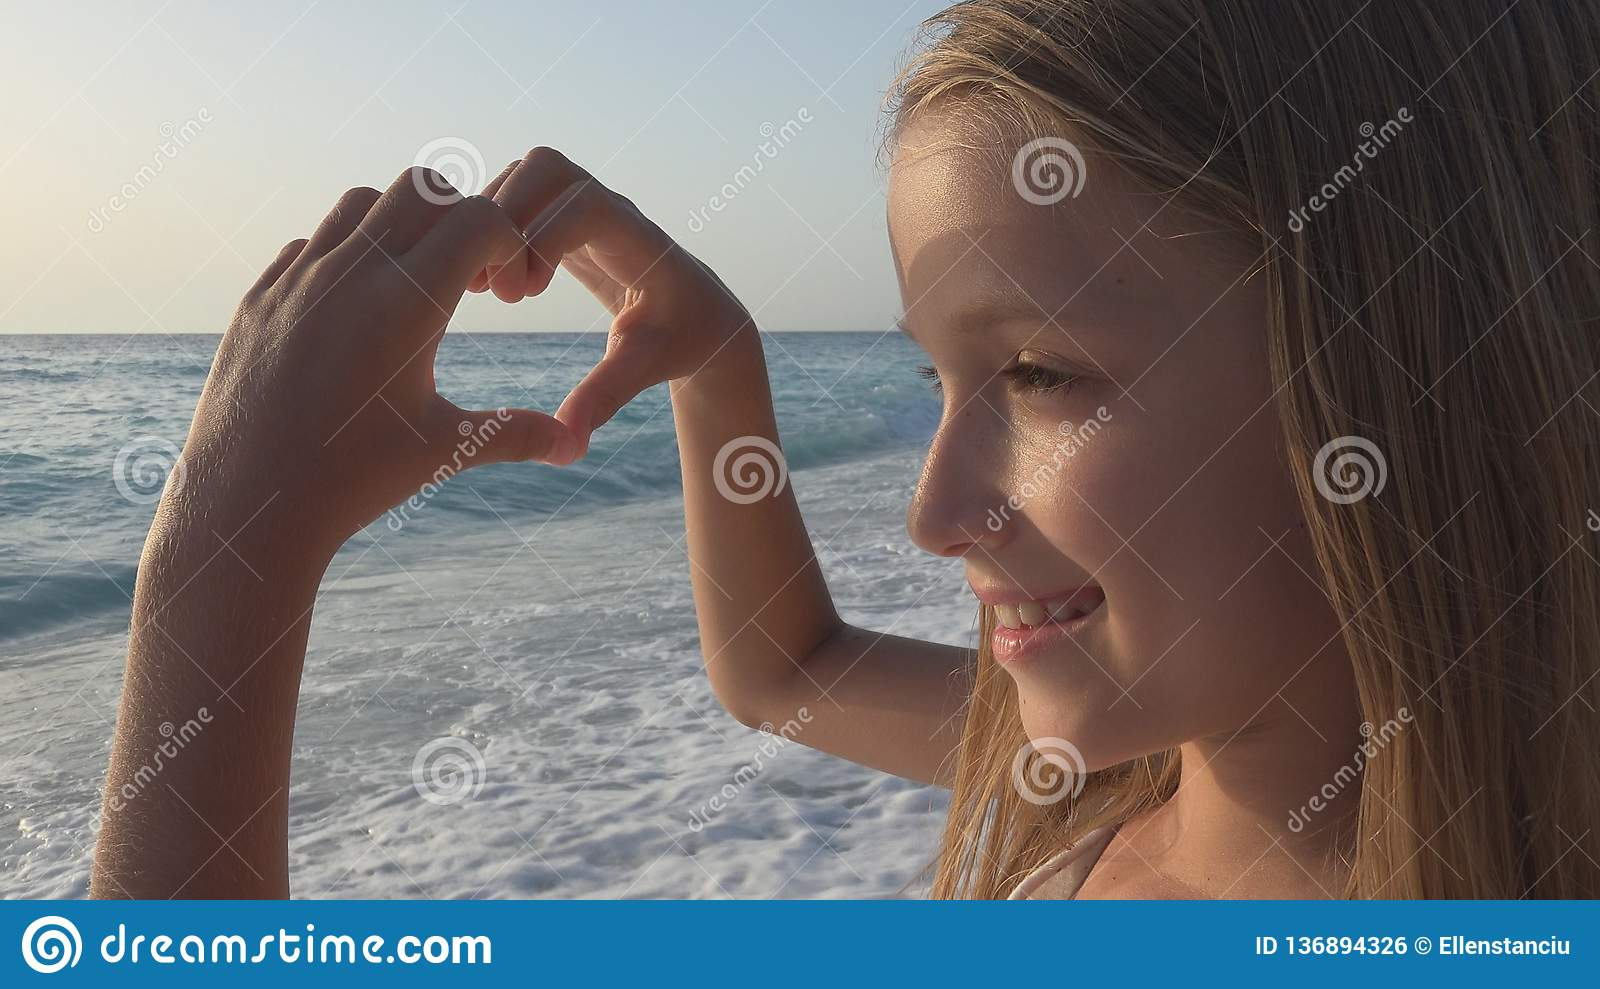 Child Playing on Beach, Kid Watching Sea Waves, Girl Makes Heart Shape Love Sign